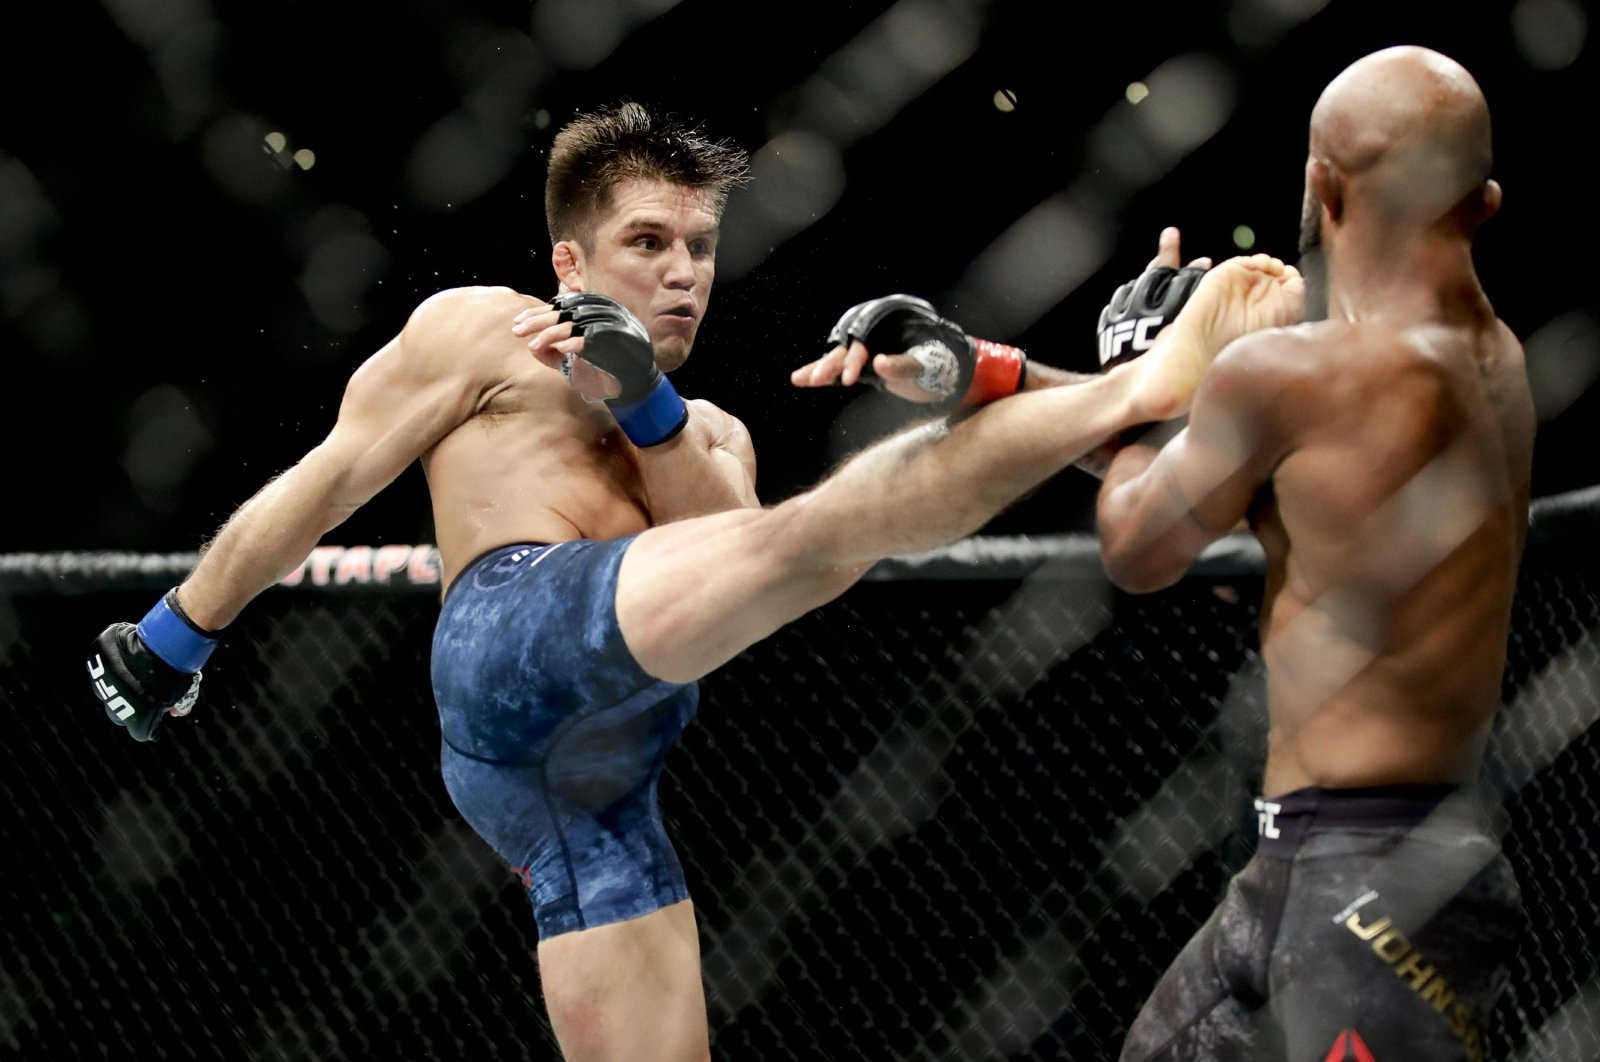 Henry Cejudo kicks Demetrious Johnson during their UFC flyweight title mixed martial arts bout at UFC 227 in Los Angeles, Aug. 4, 2018. (AP Photo)